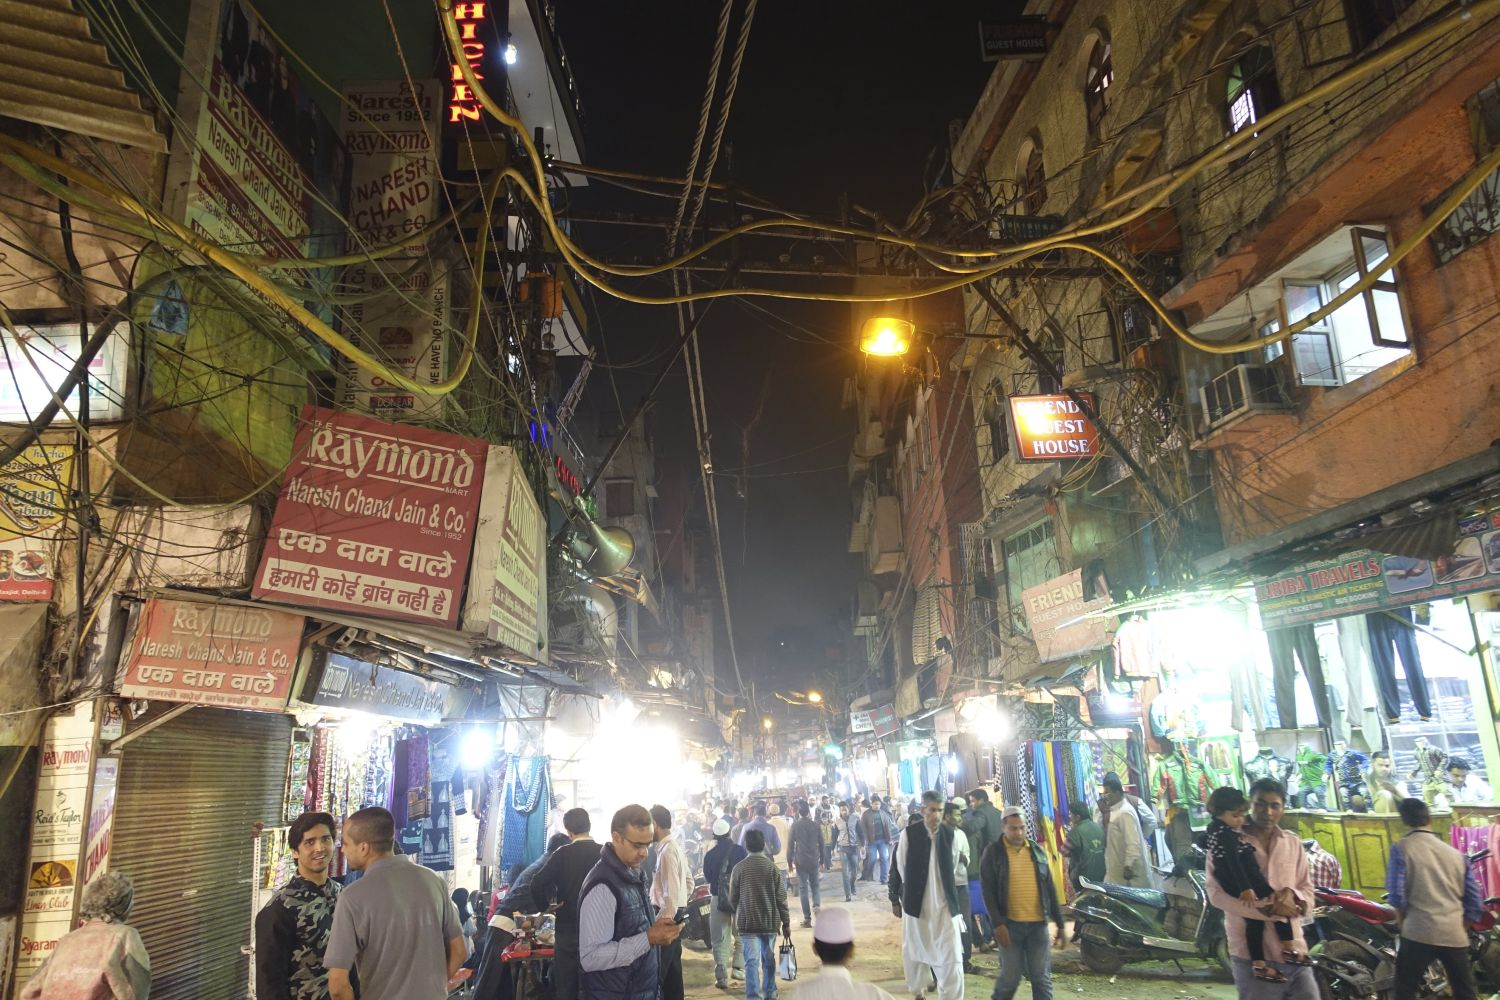 Old Delhi | Traffic at the evening | Chandni chowk |streetphotography ©sandrine cohen